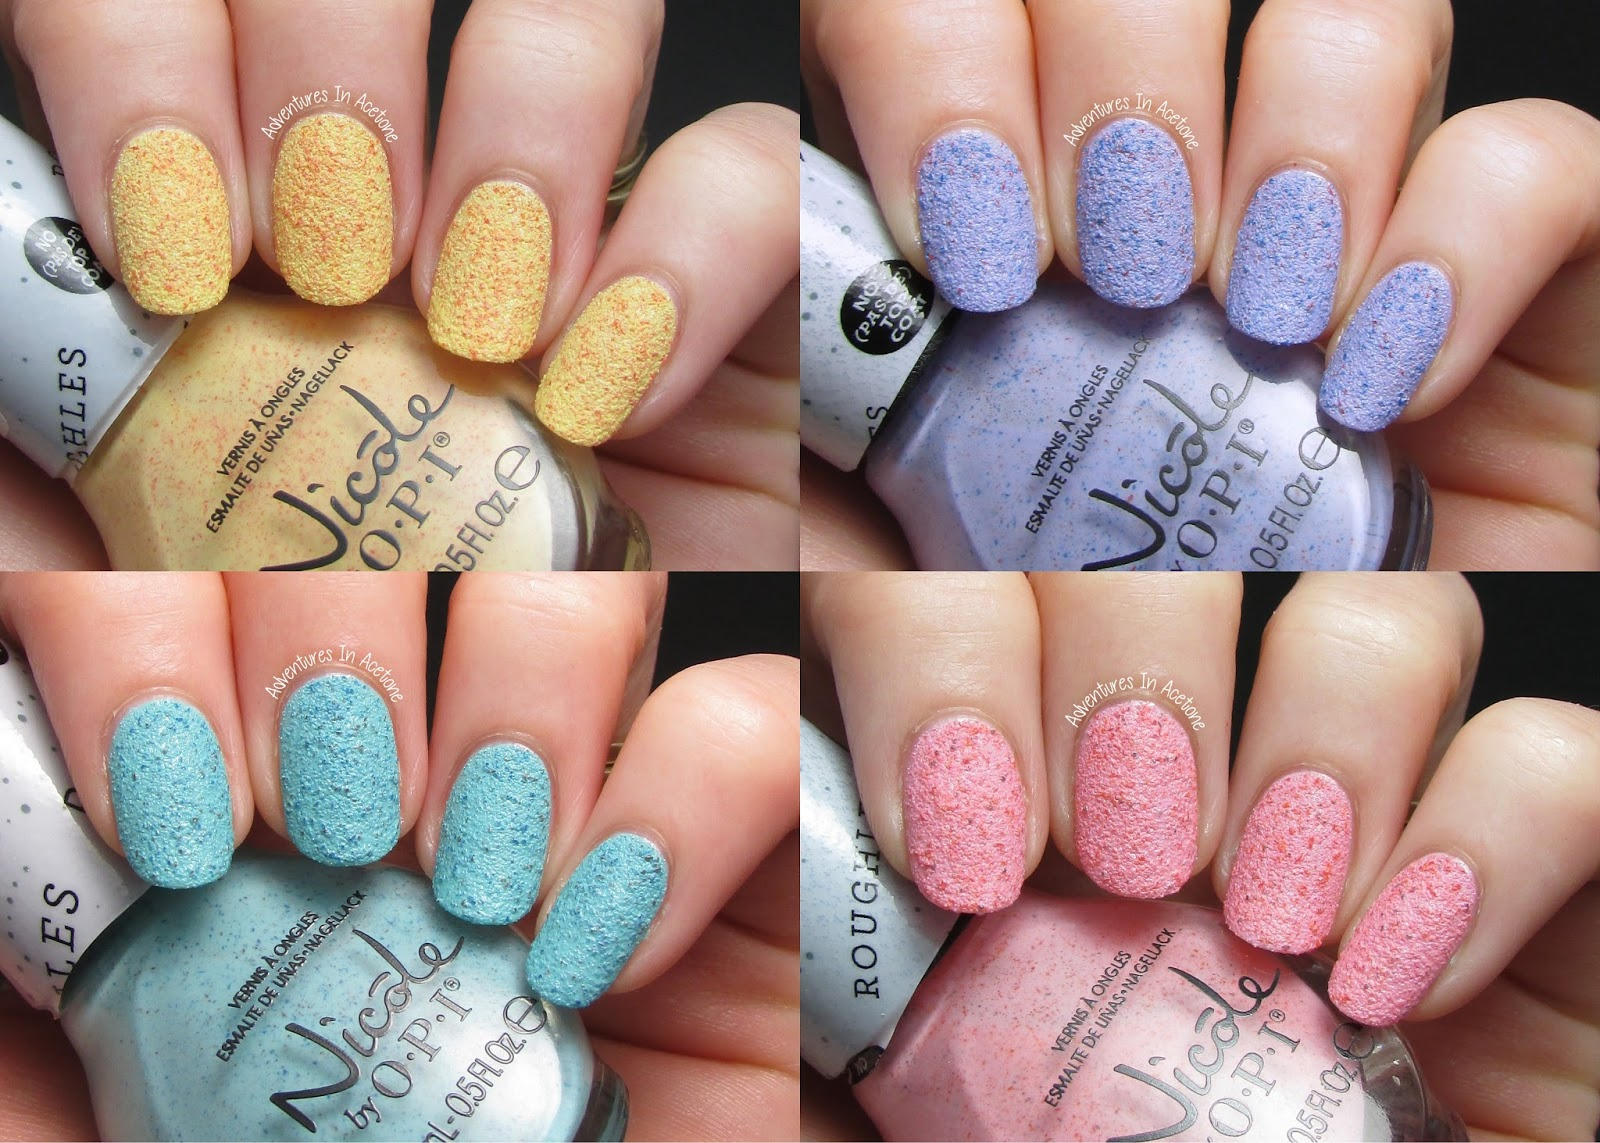 Nicole by OPI Roughles Collection Swatches! - Adventures In Acetone